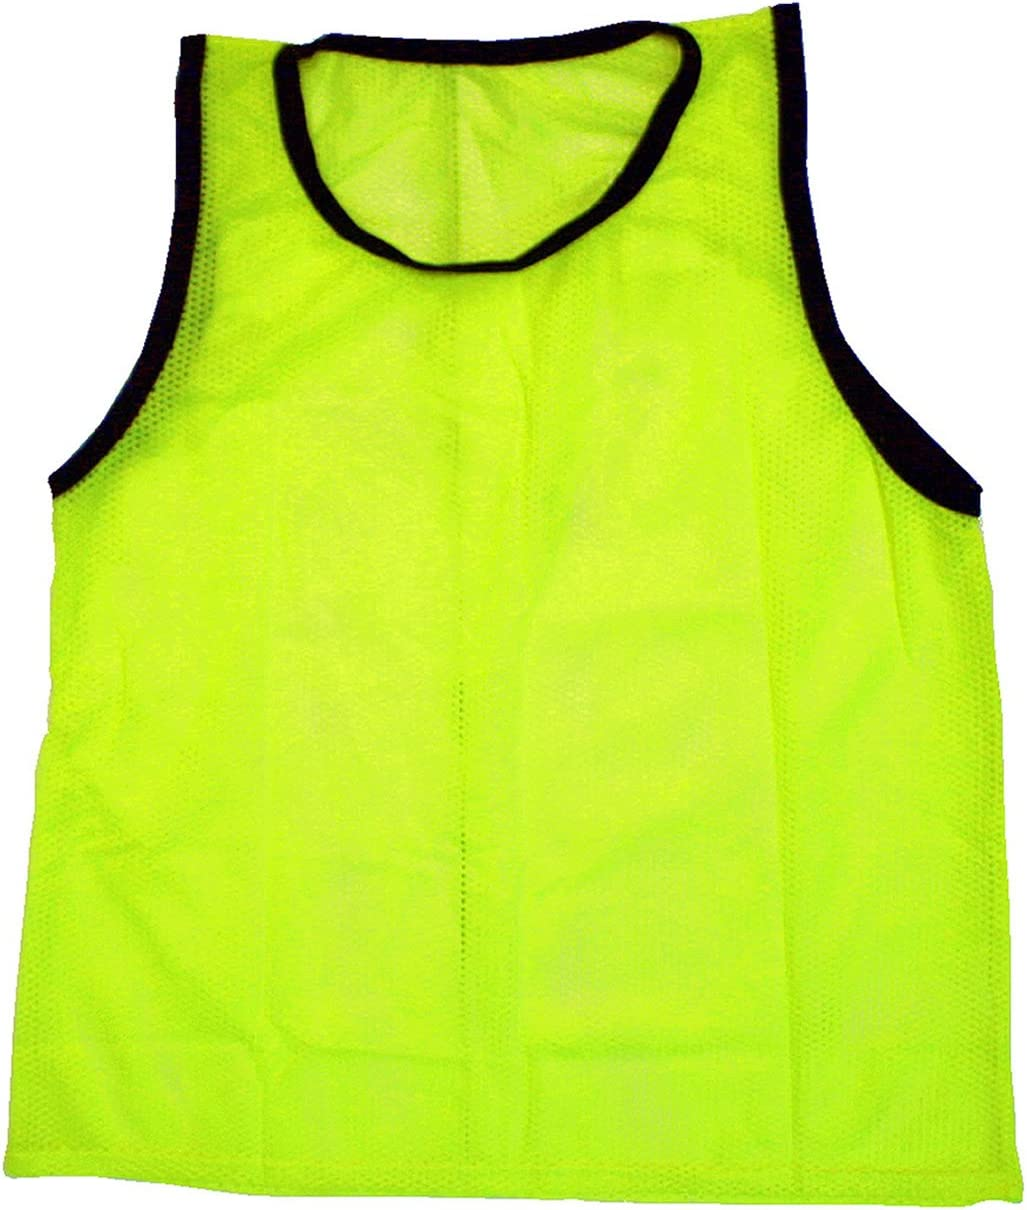 NEW SCRIMMAGE PRACTICE VESTS PINNIES SOCCER YOUTH BLACK